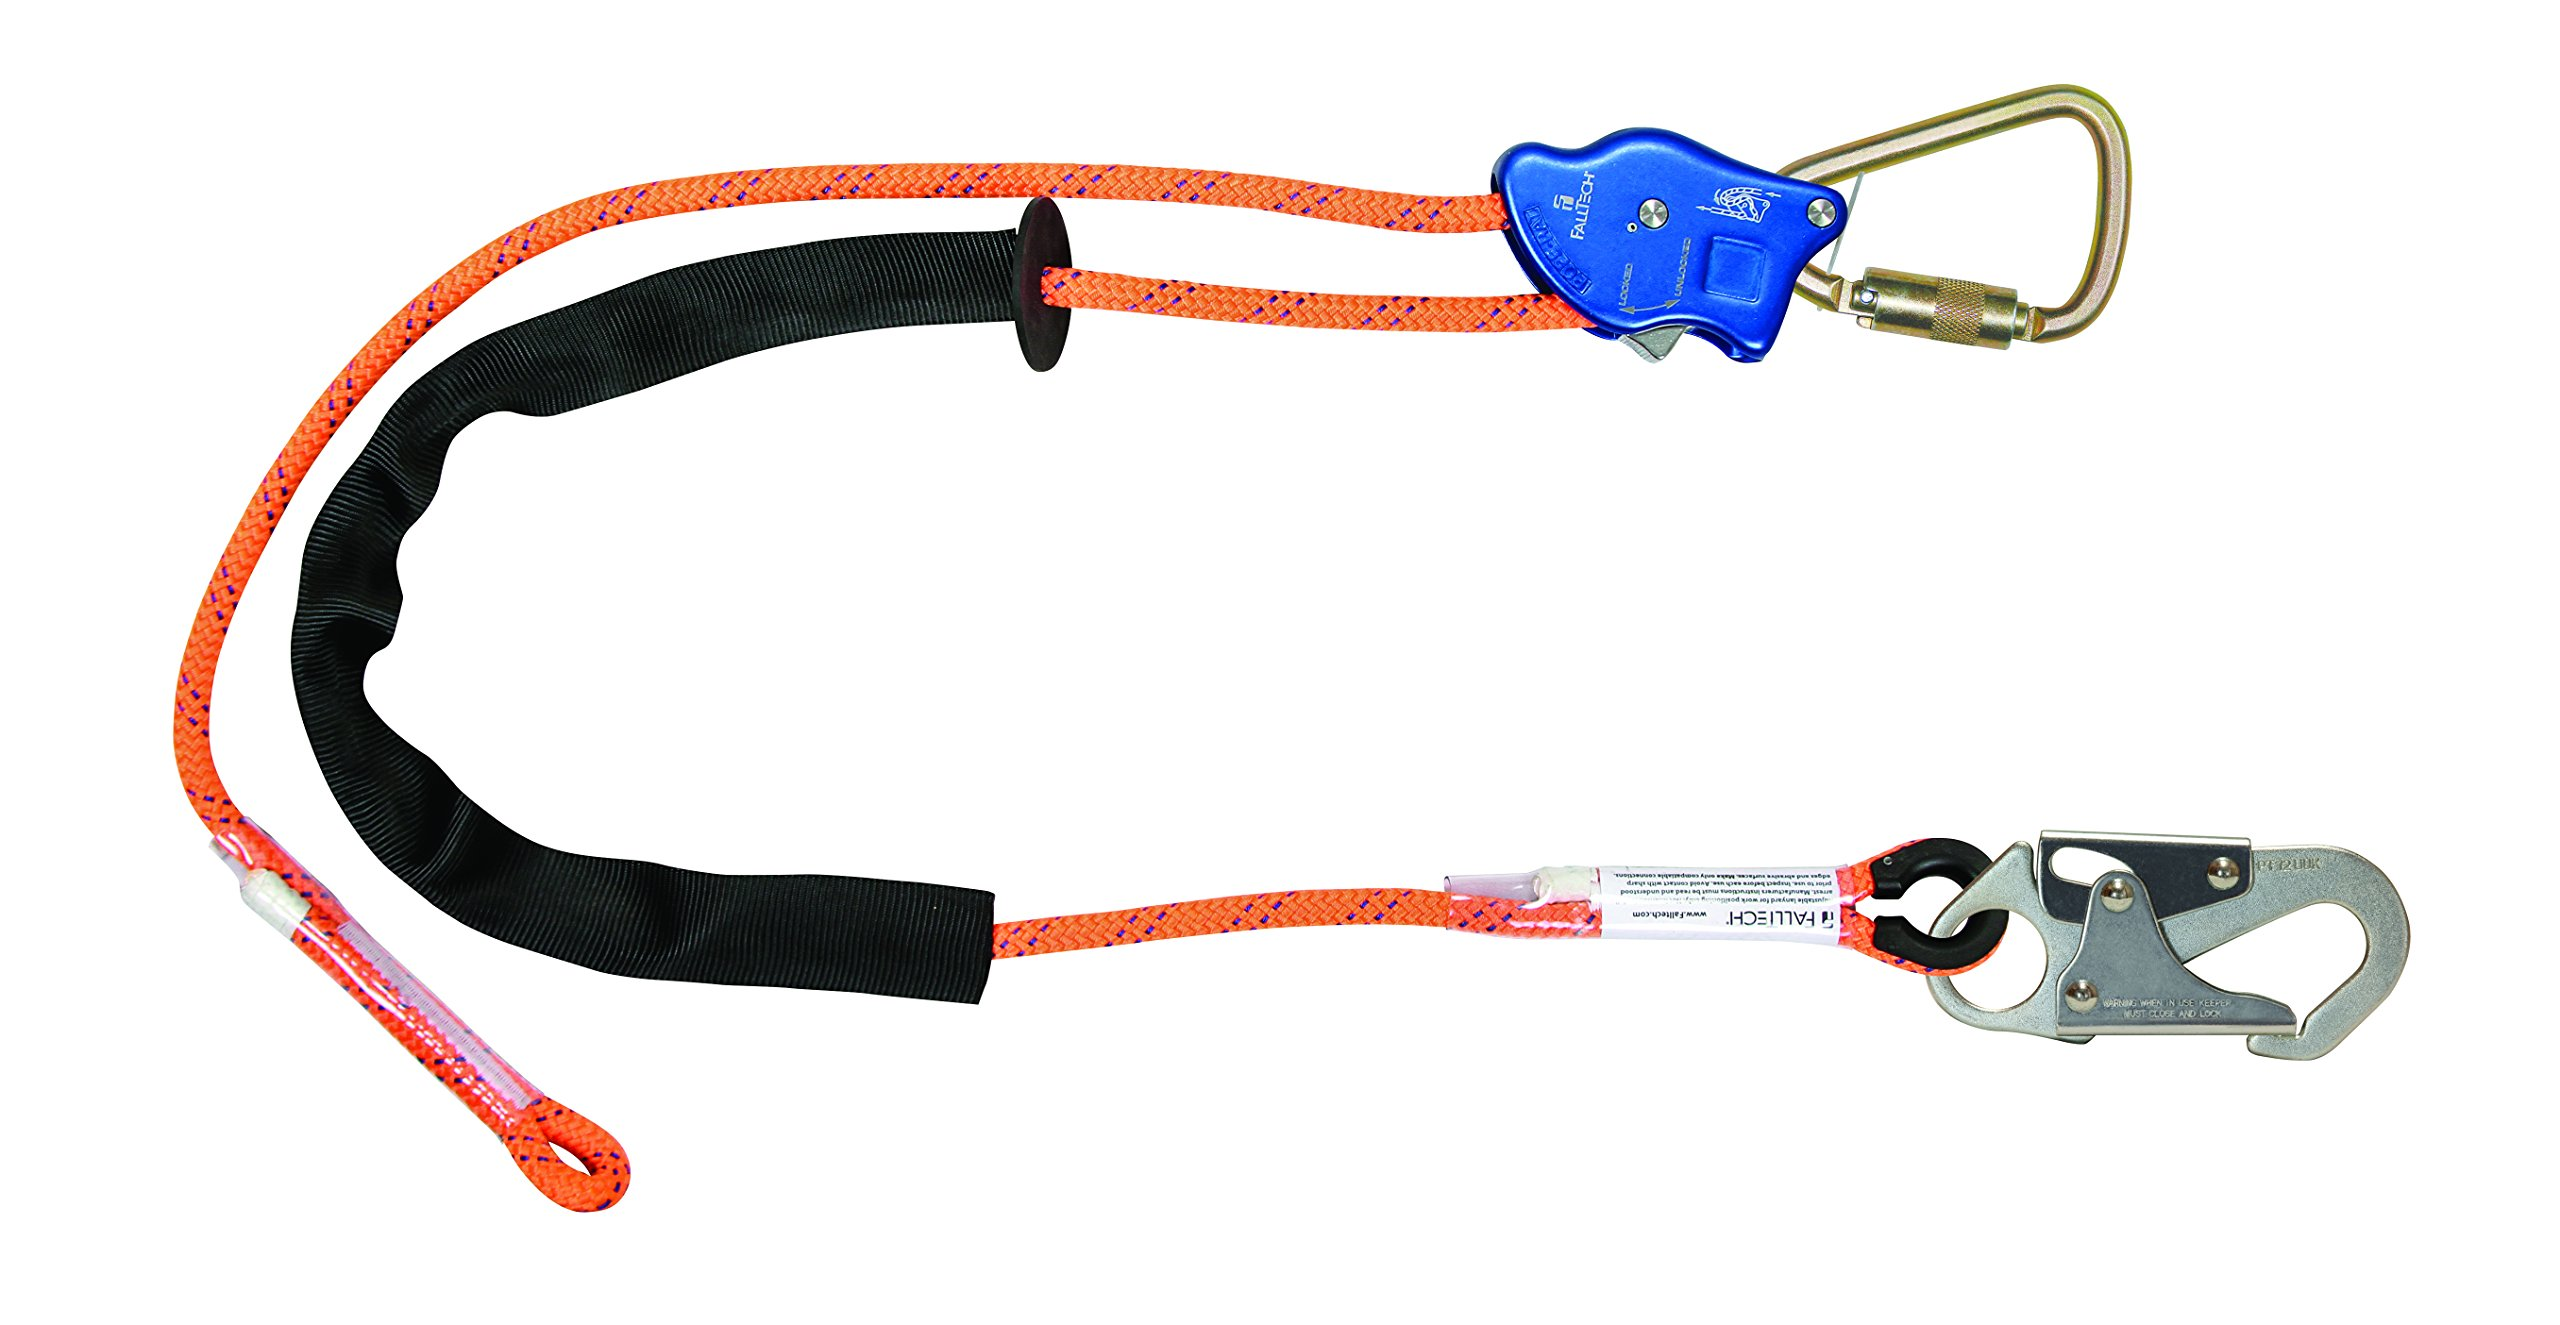 FallTech 8165B165 TowerClimber Adjustable Rope Positioning Lanyard, Aluminum Auto-Locking Rope Adjuster, Steel Carabiner/Snap Hook	, 165', Orange